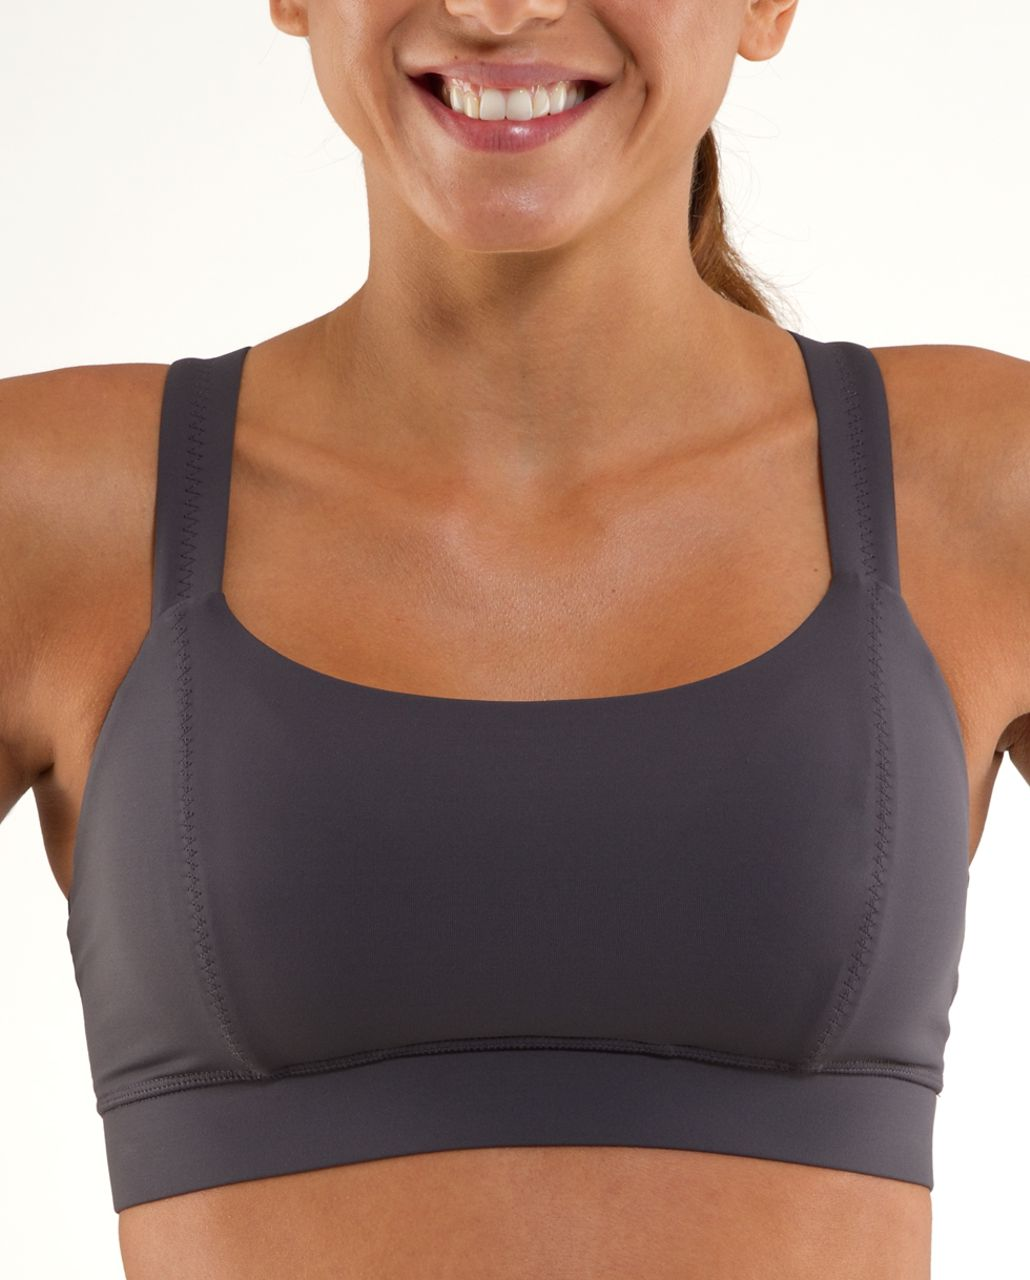 Lululemon Cross My Heart Bra - Coal